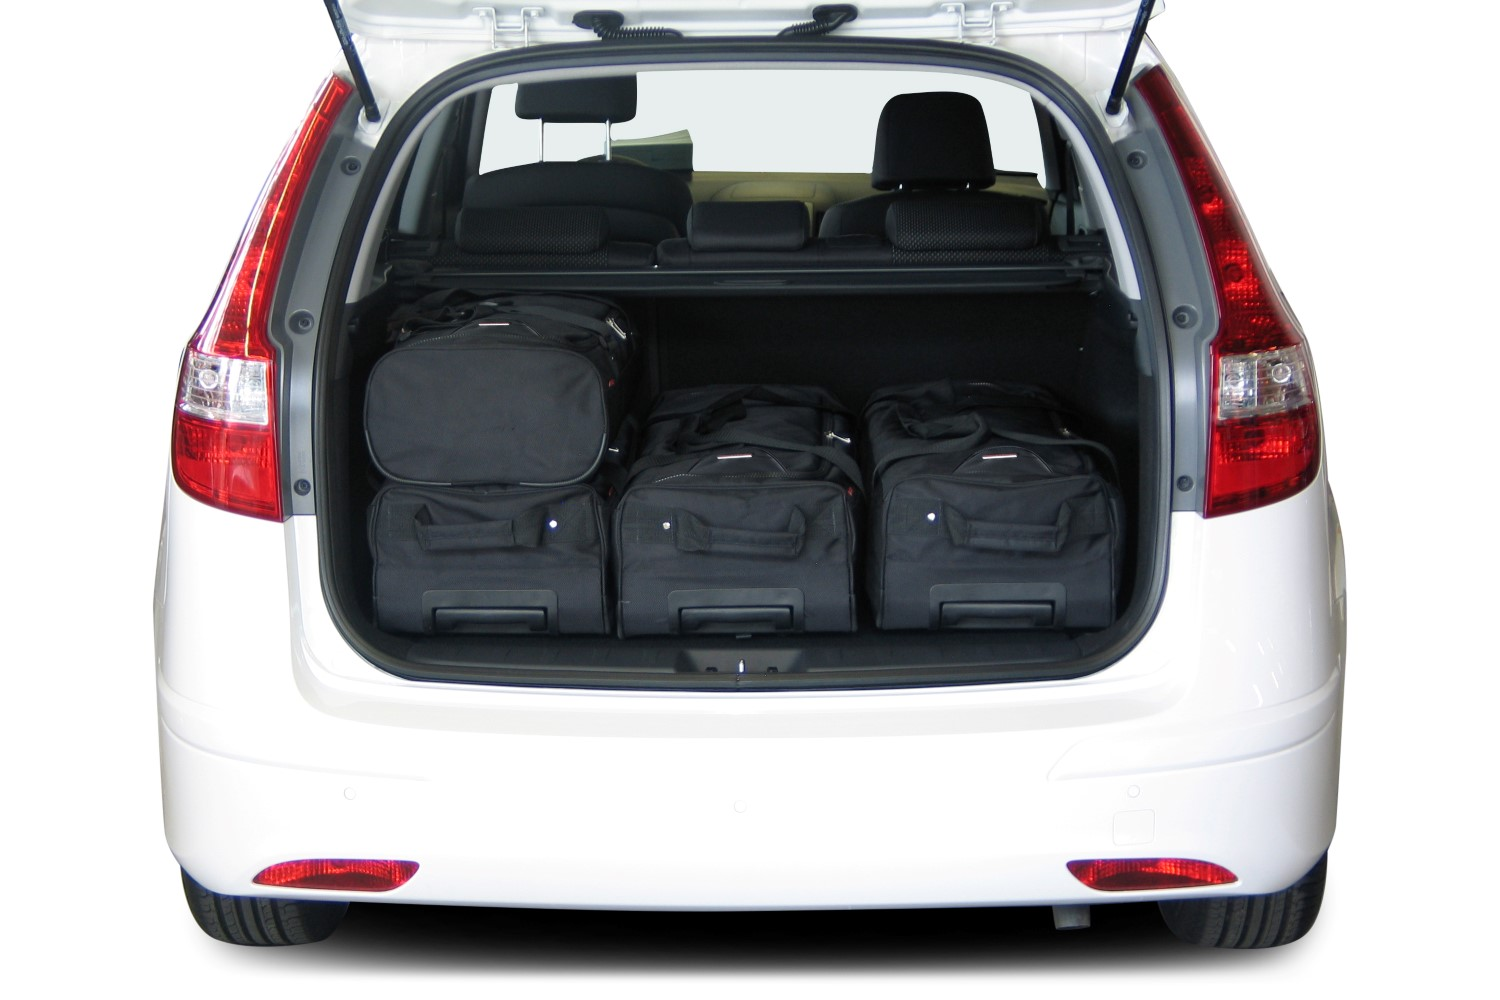 car bags travel bag sets hyundai i30 cw fd fdh 2008 2012 car bags travel bags. Black Bedroom Furniture Sets. Home Design Ideas